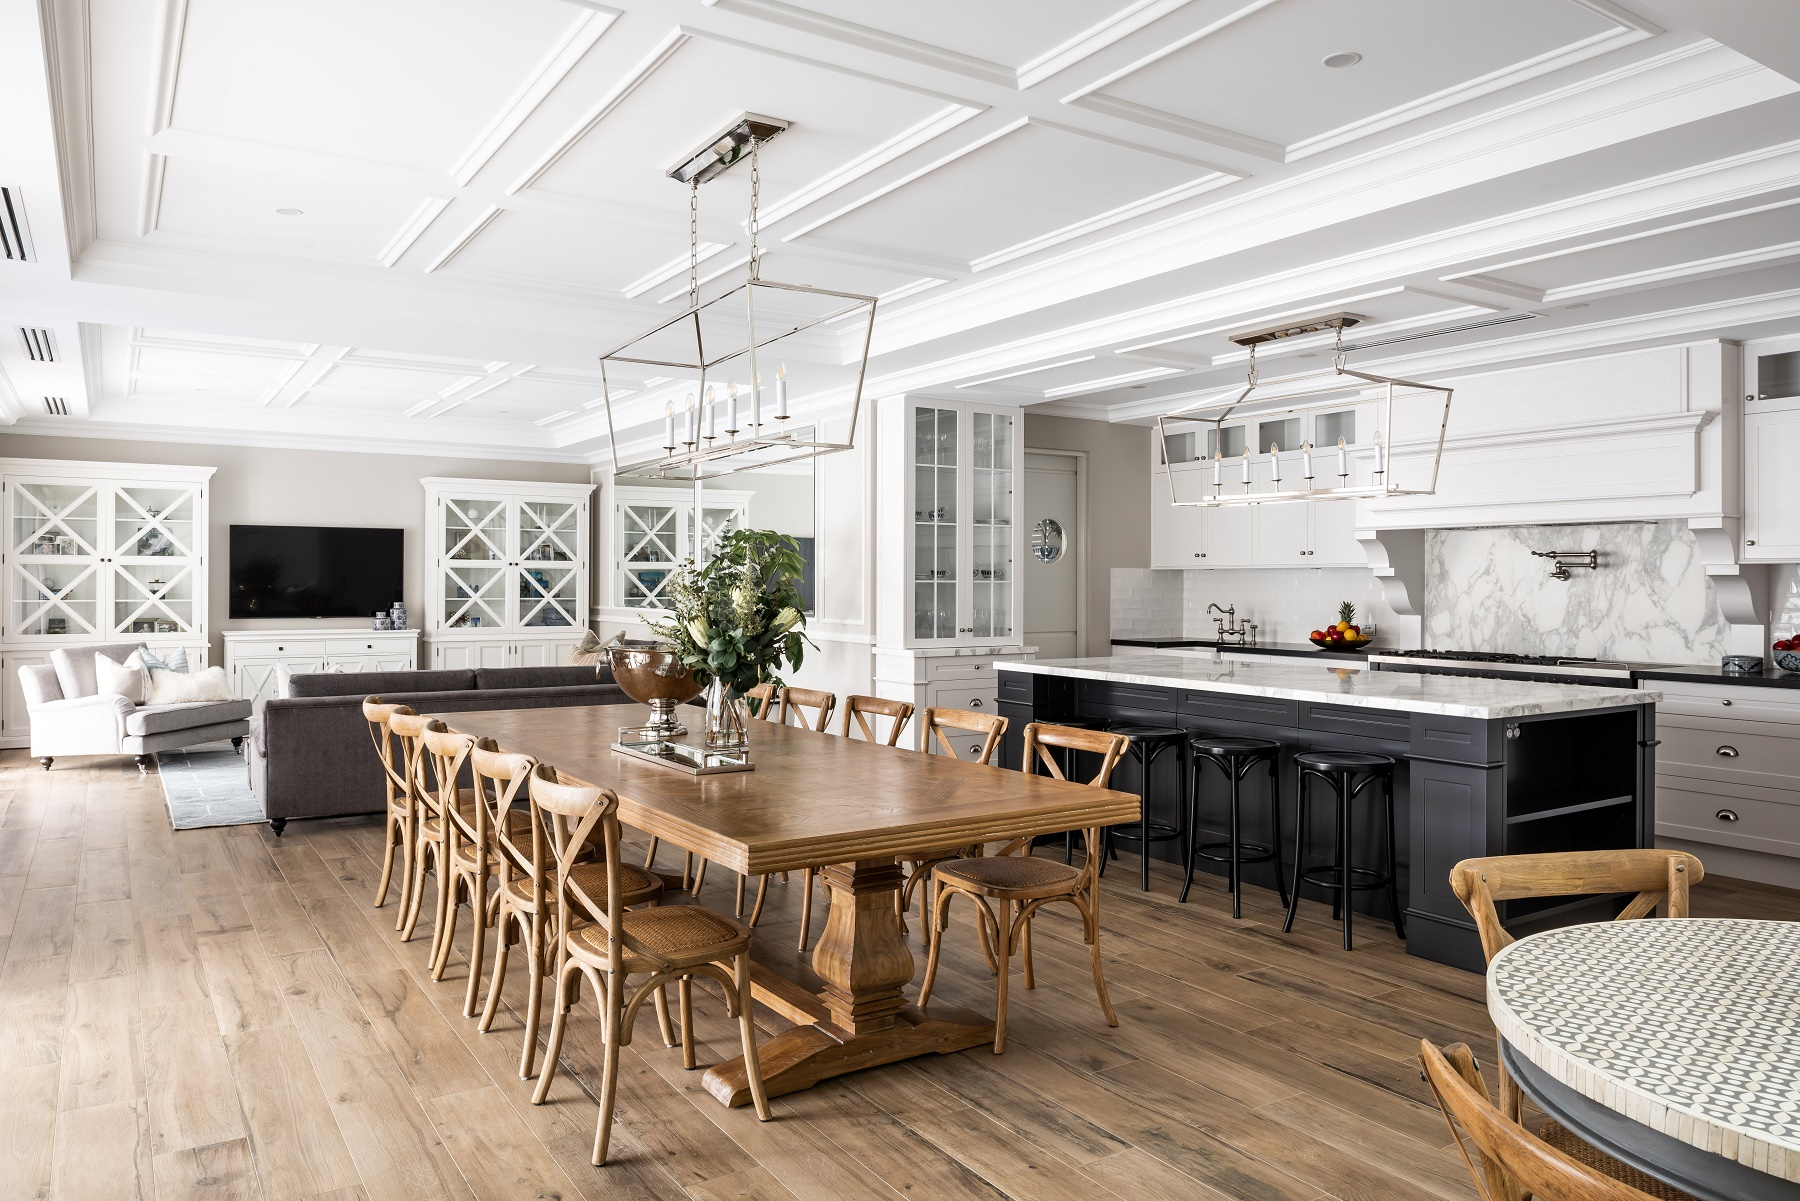 dining and kitchen space with timber flooring